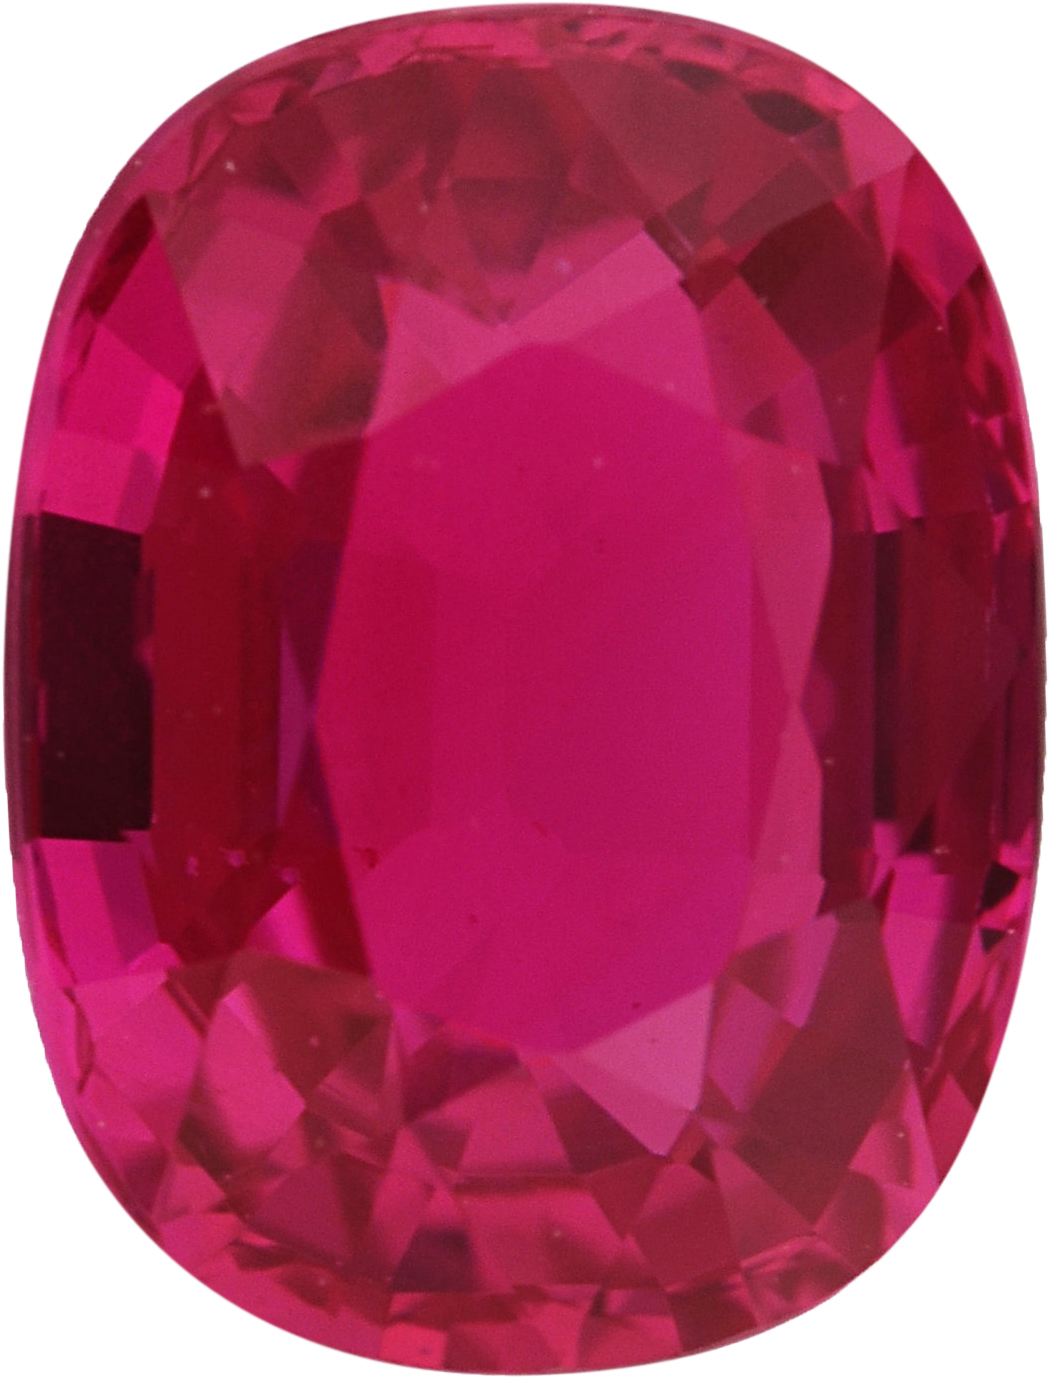 Deal On  No Heat Ruby Loose Gem in Antique Cushion Cut, Vibrant Purple Red, 6.80 x 5.20  mm, 1.17 Carats